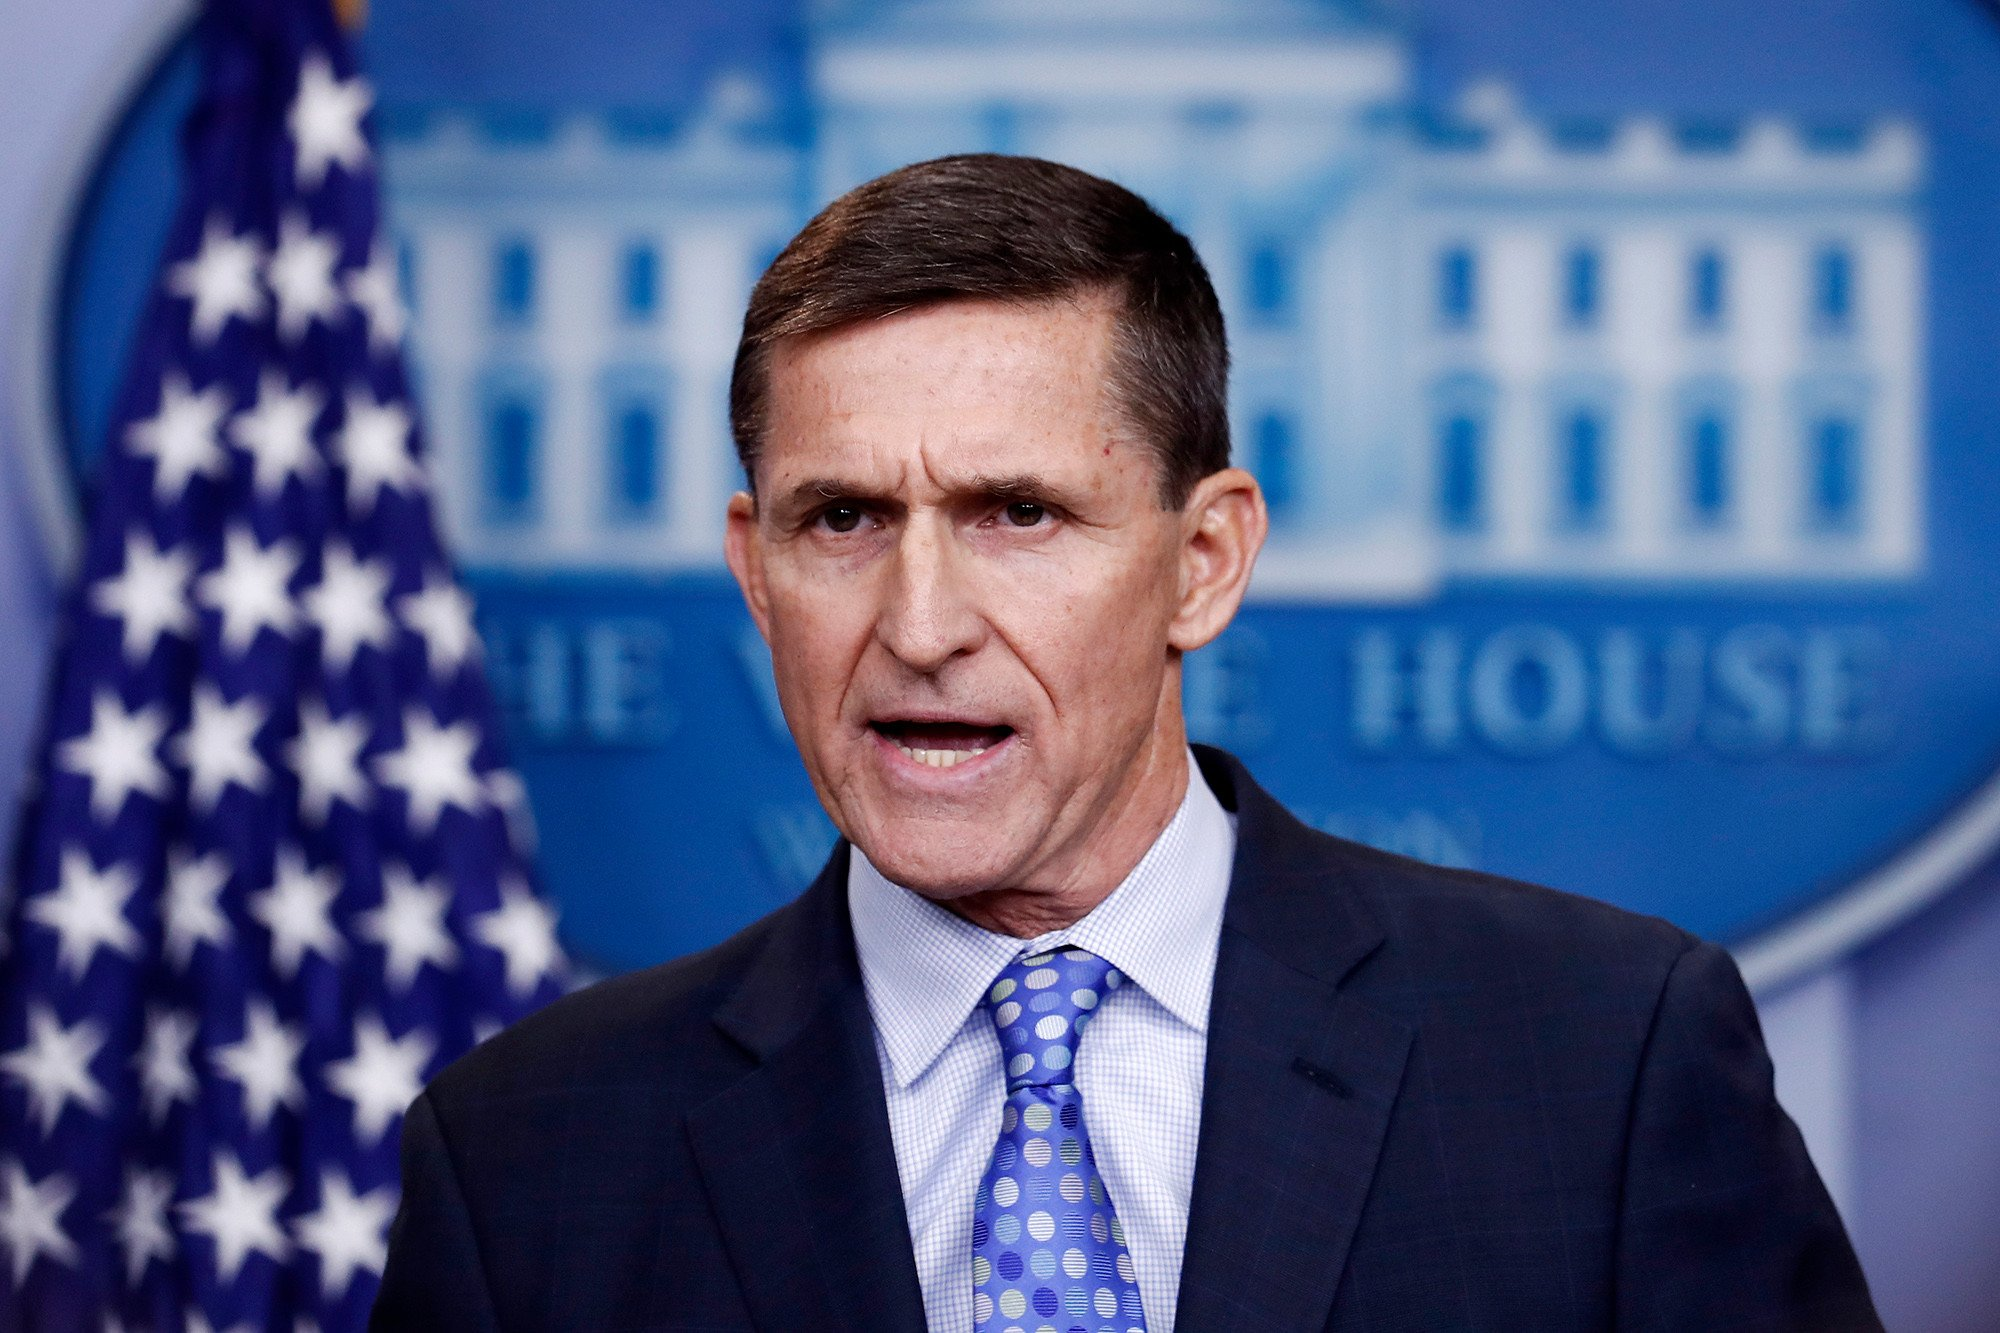 Flynn stumps for congressional candidate in first appearance since guilty plea